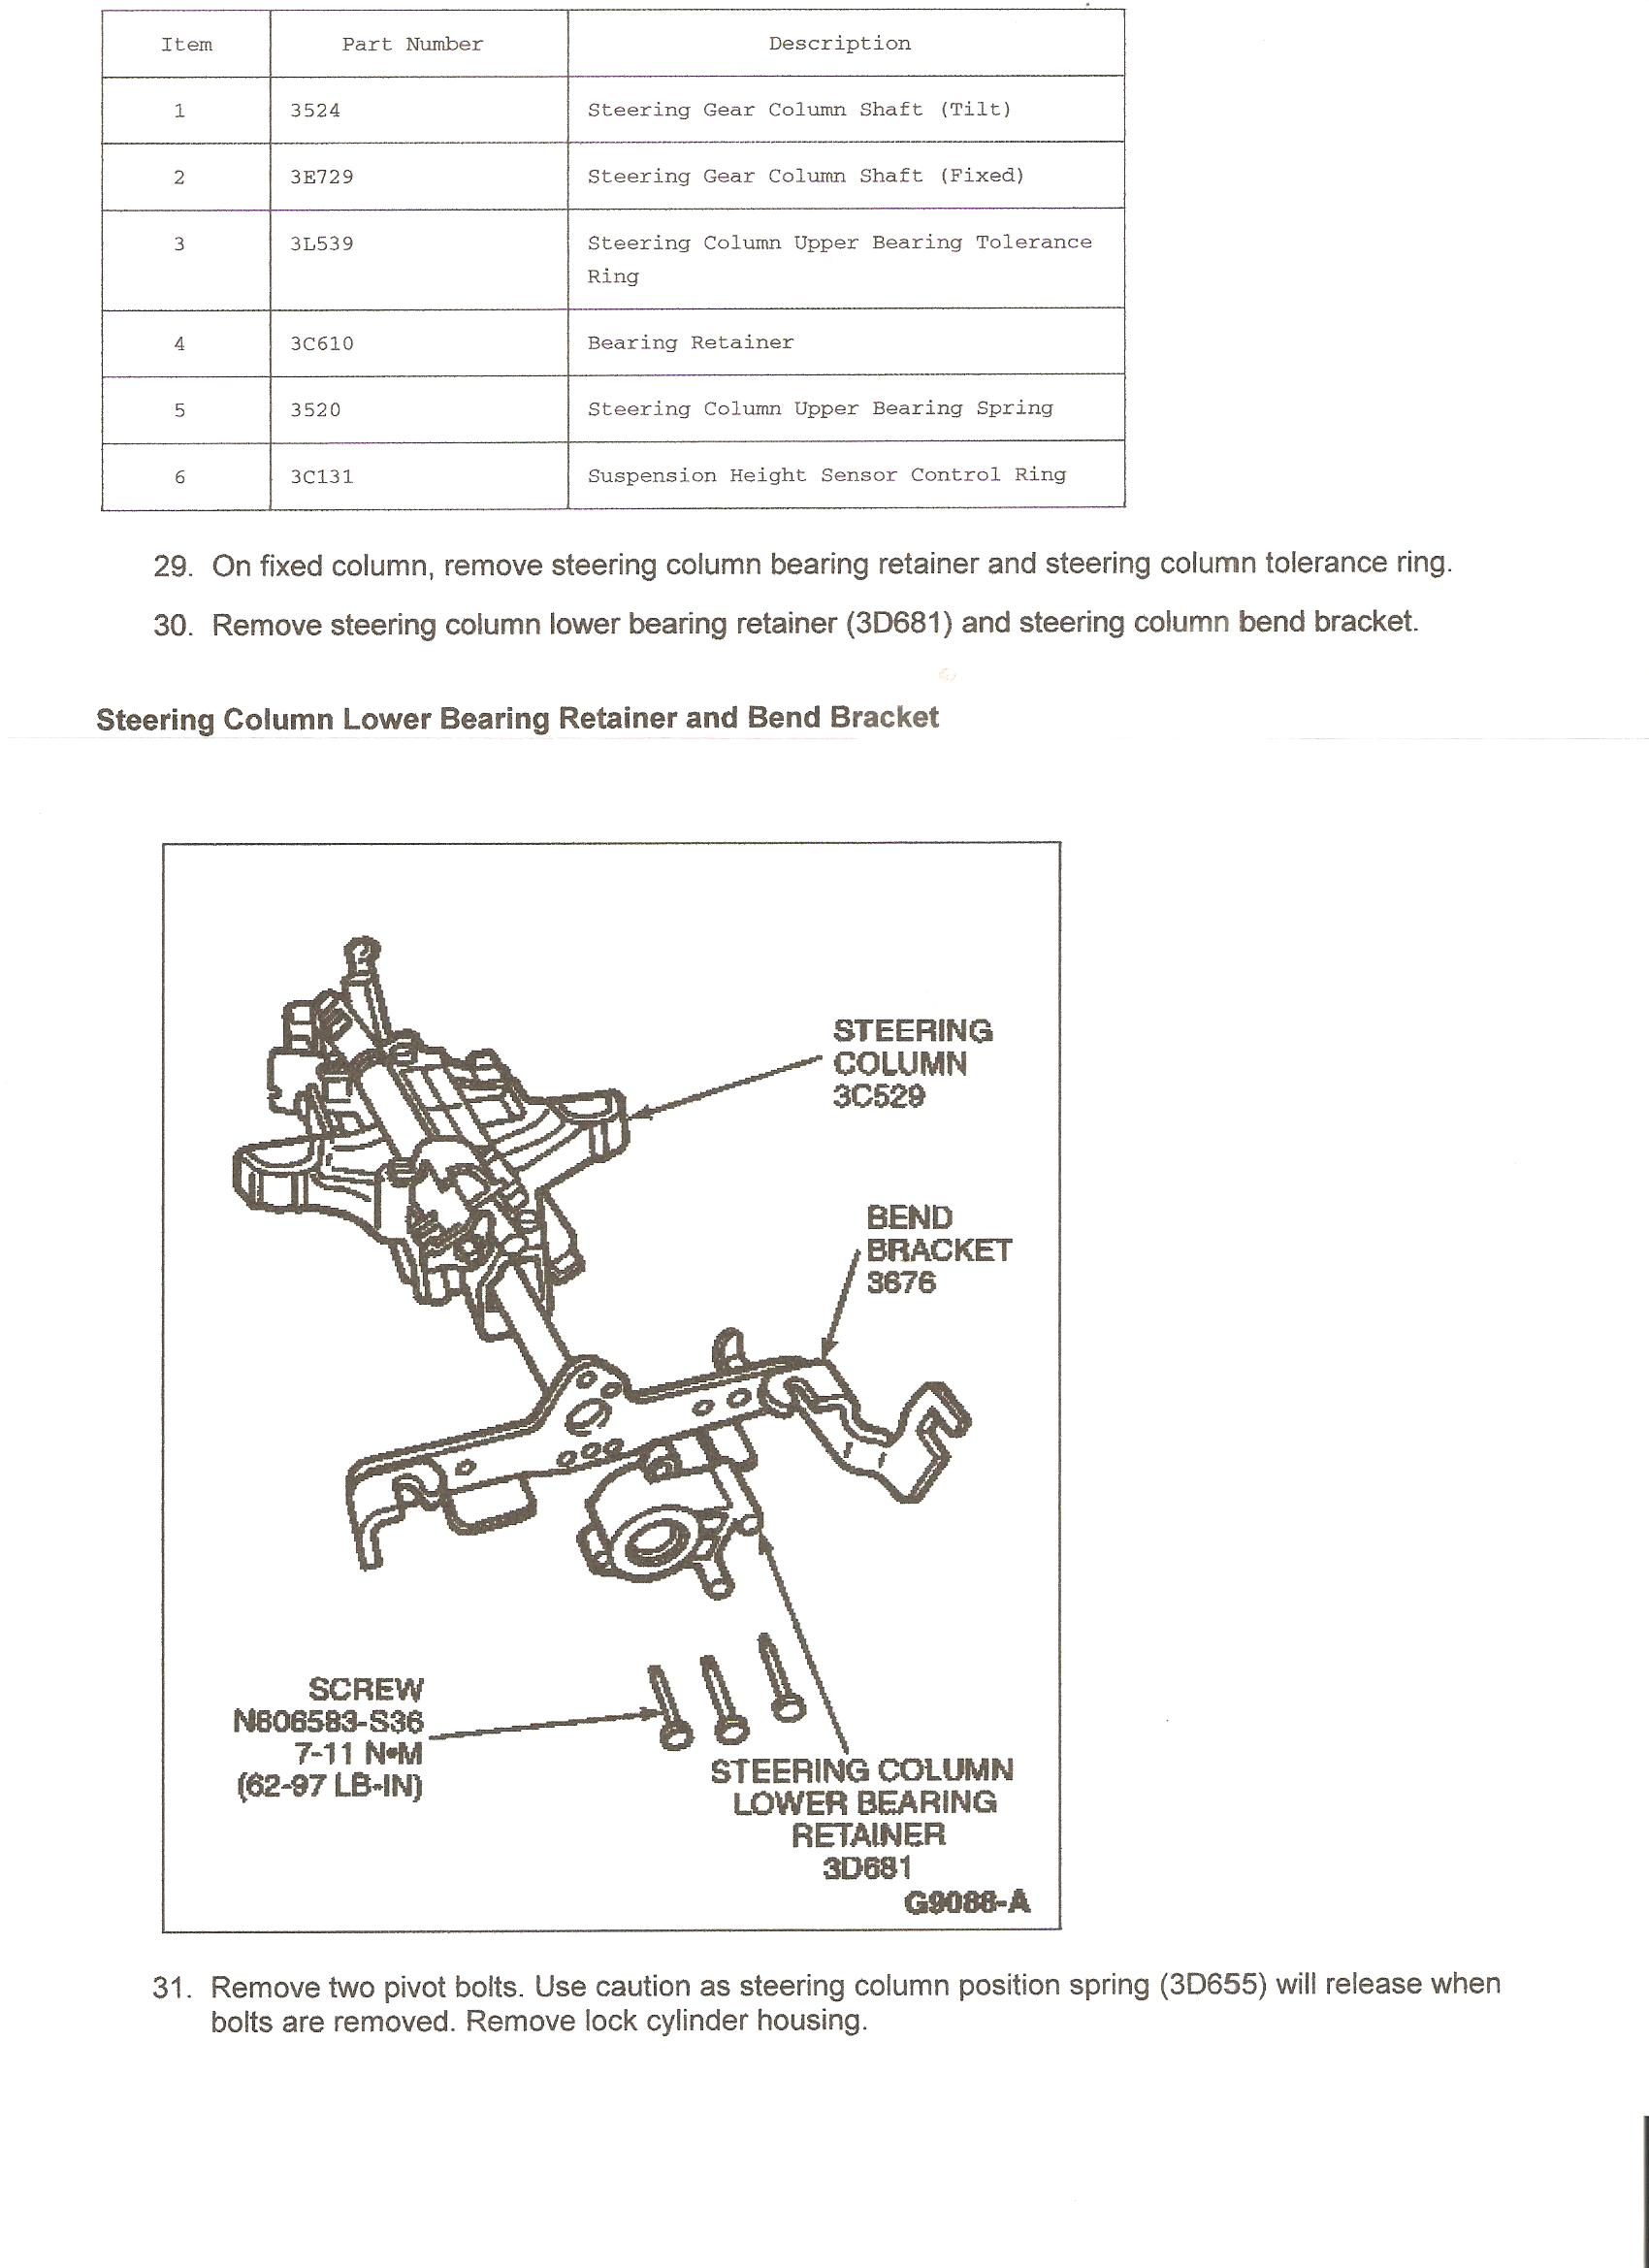 Need Instructions And Pics For Dis Assembly Of Steering Column 1983 Ford Diagram Steve Graphic